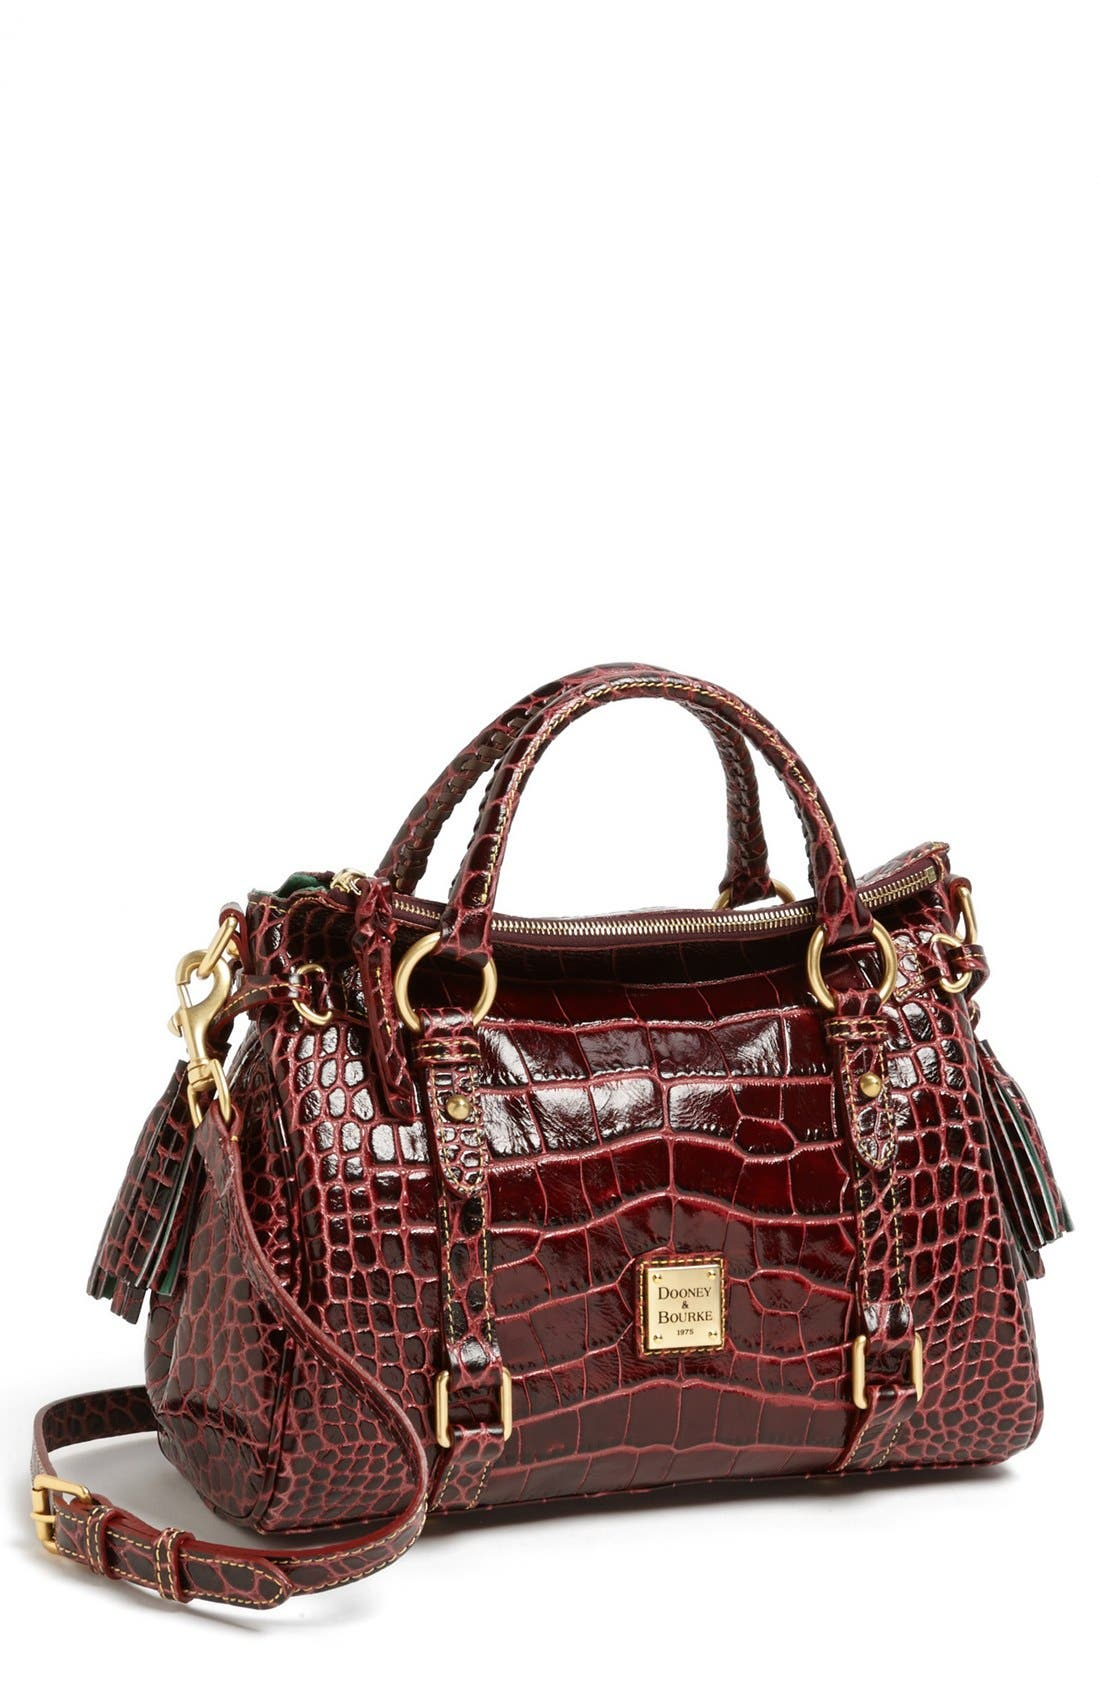 Alternate Image 1 Selected - Dooney & Bourke 'Small' Croc-Embossed Leather Satchel